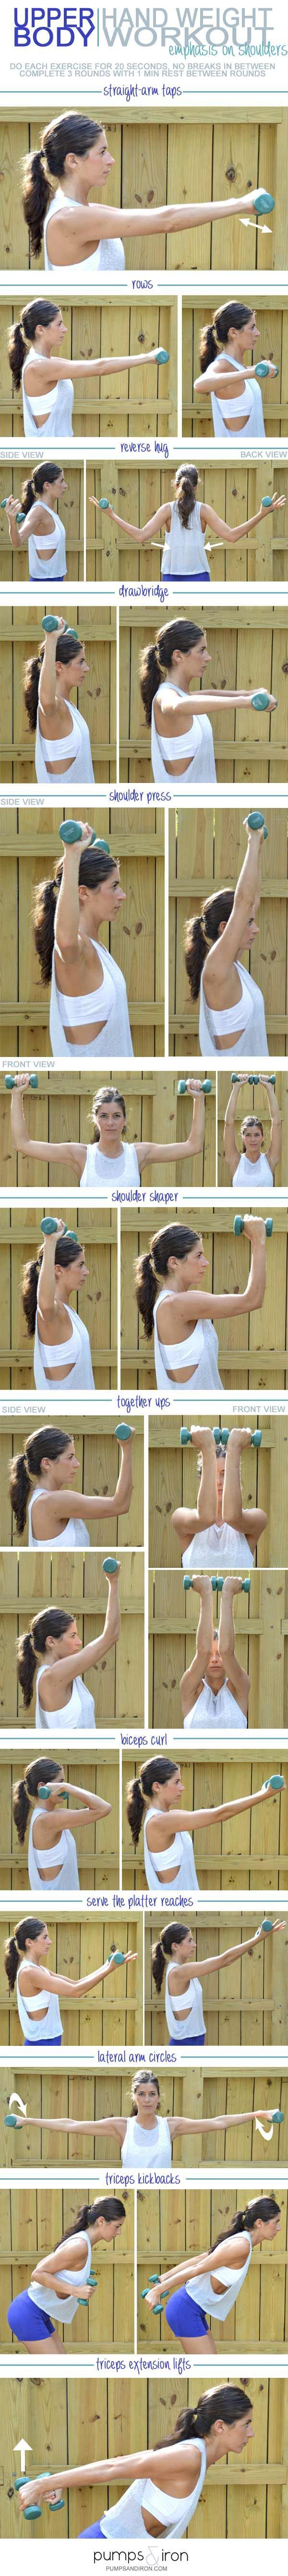 All you need is a pair of hand weights for this arm workout. #fitness